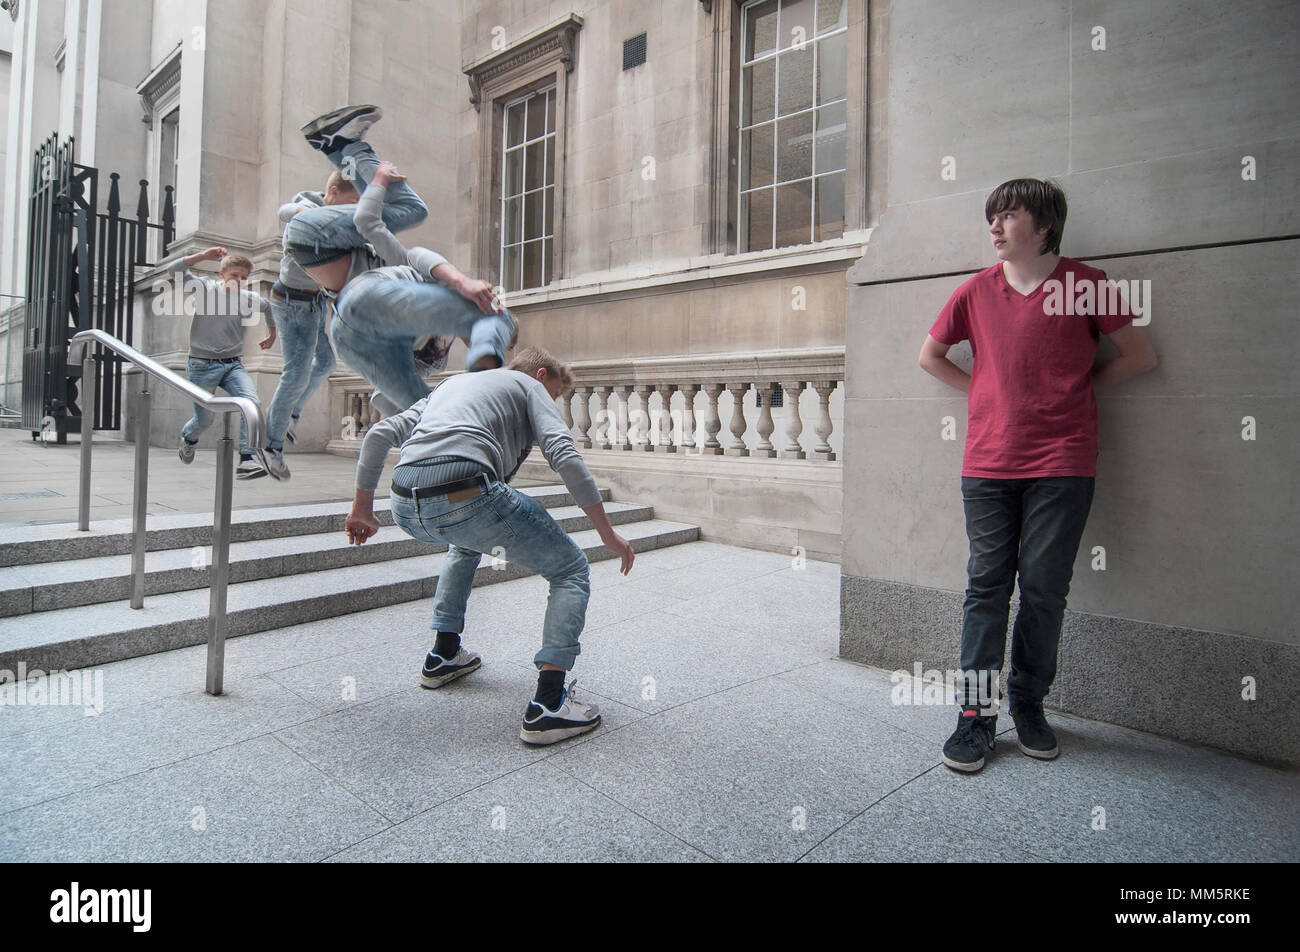 Free running parkour athlete jumping of stairs in public area, London, England - Stock Image